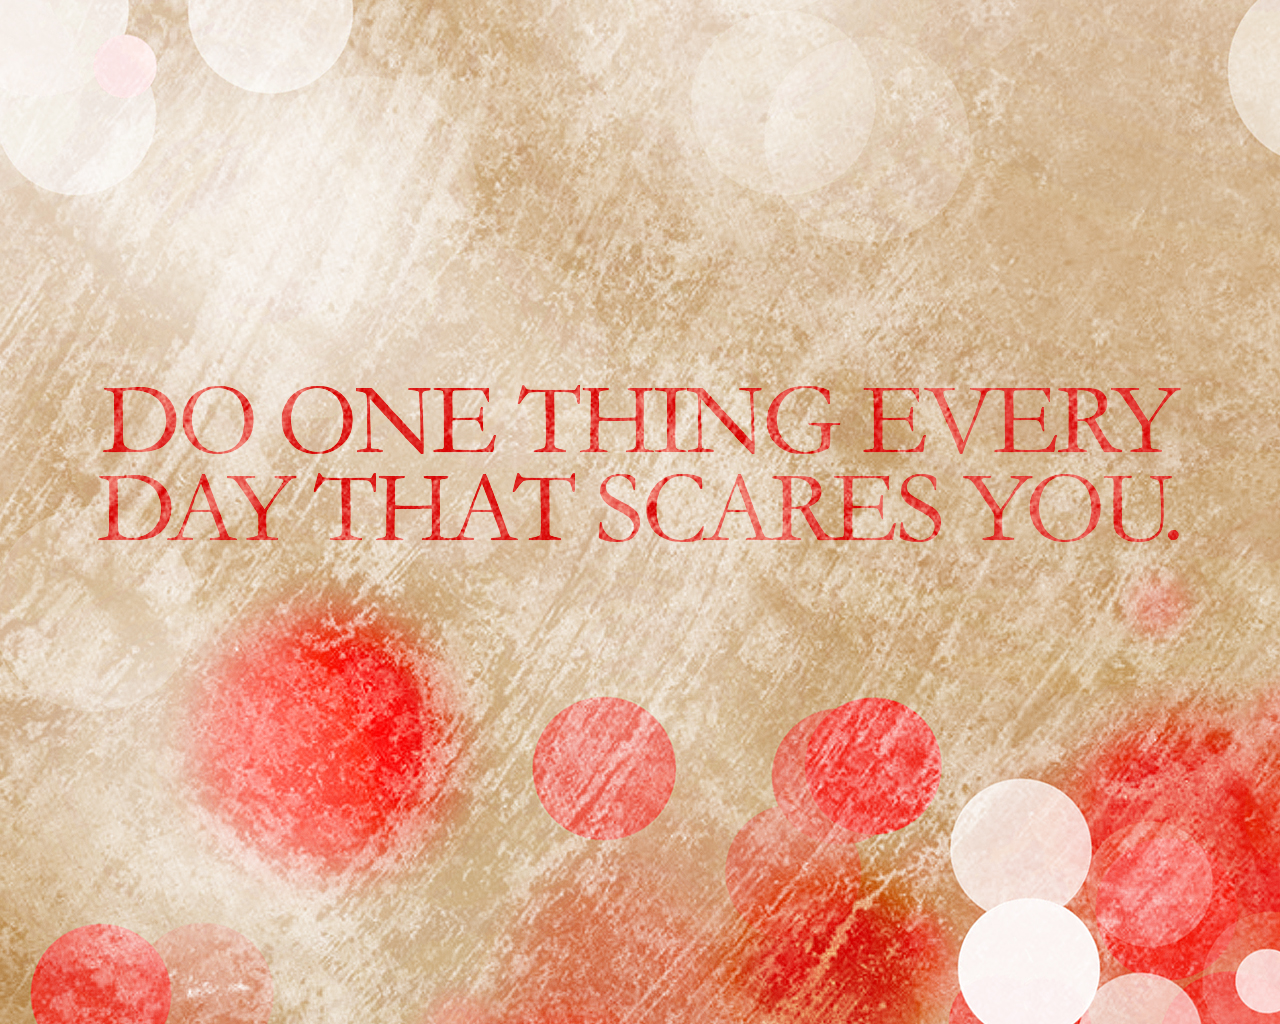 quotivee_1280x1024_0000_Do one thing every day that scares you.